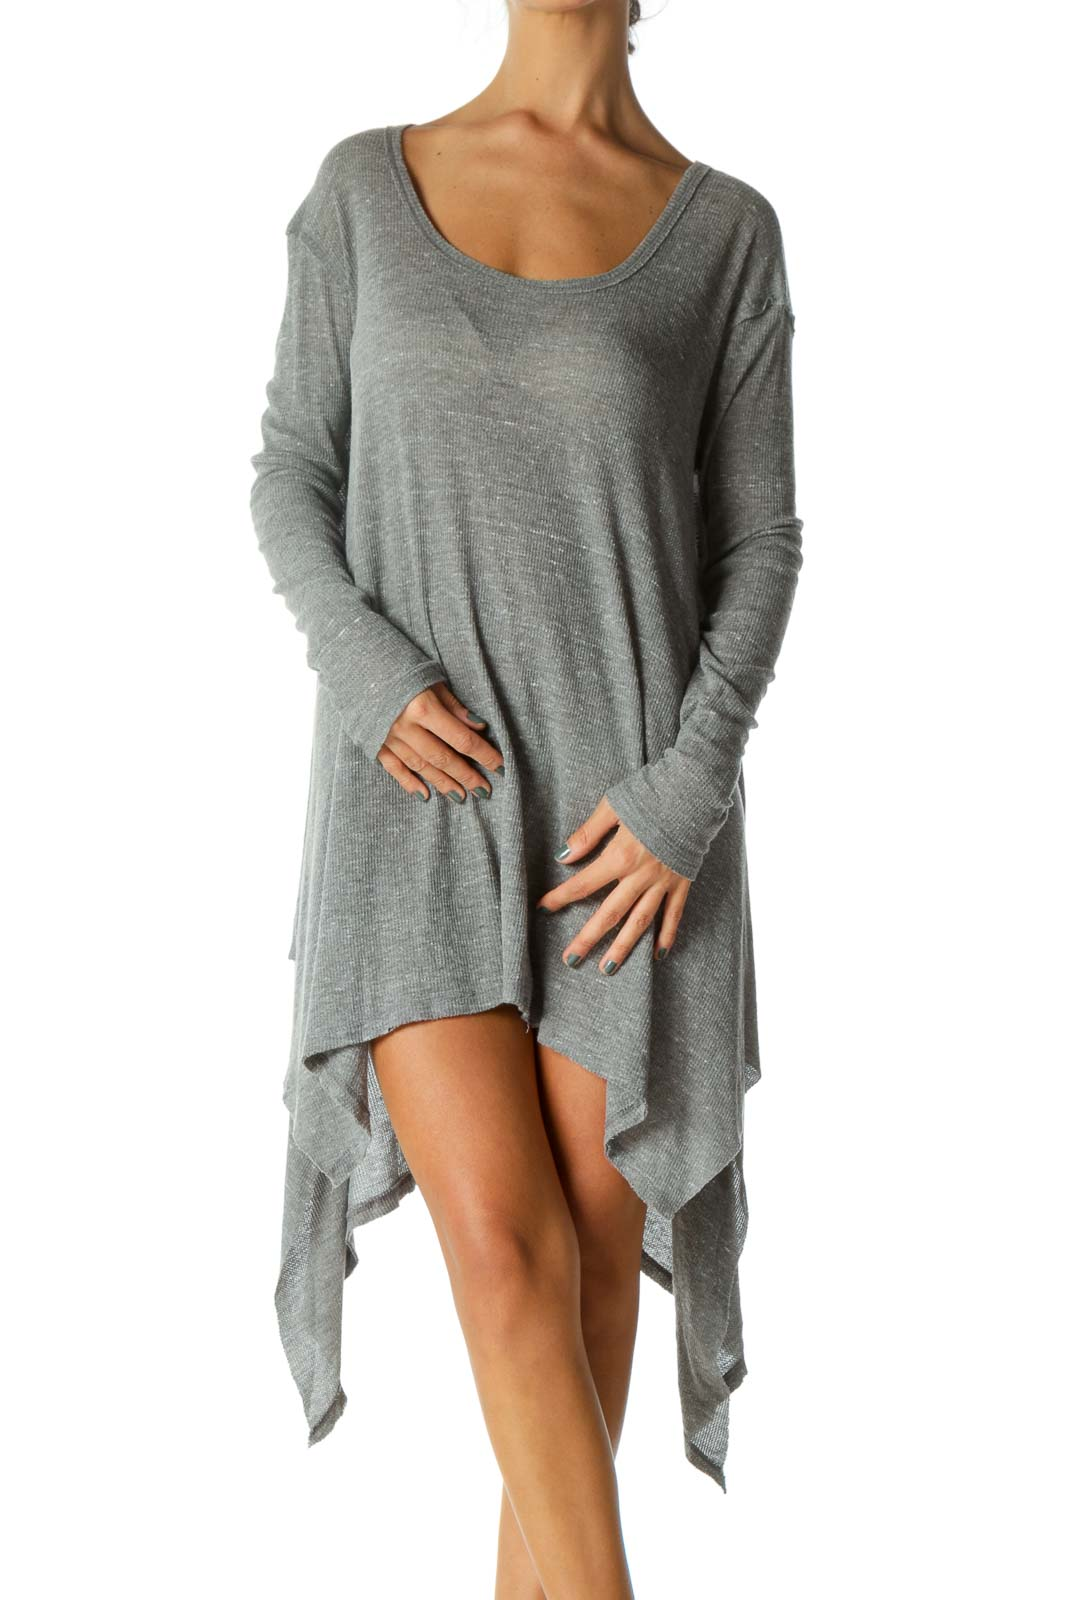 Gray Round Neck Waffle-Knit Long Sleeve Flared Top